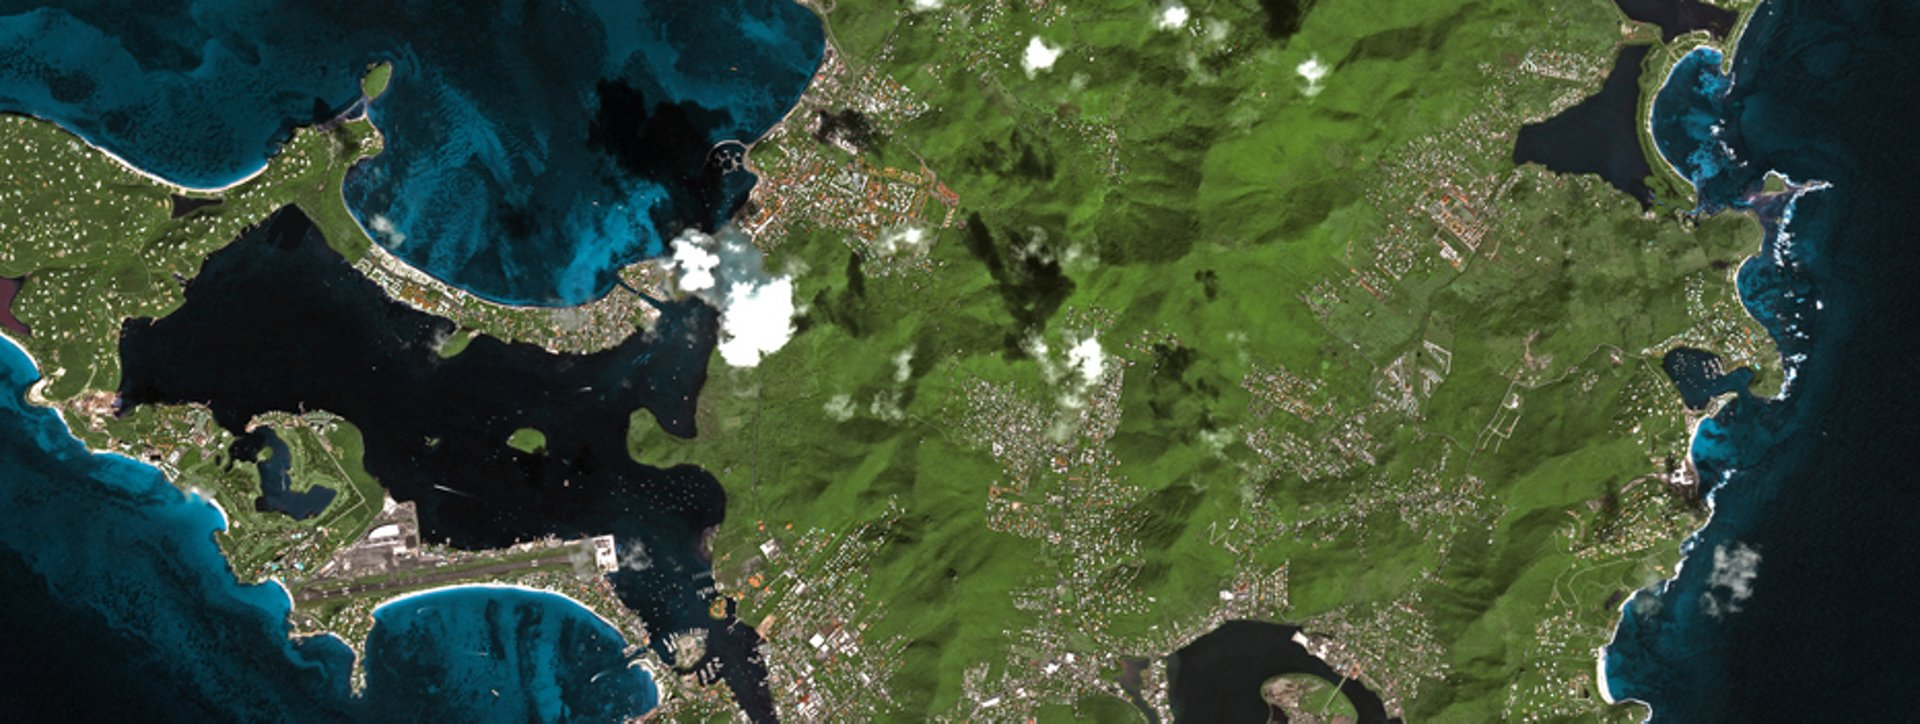 Satellite imagery provided by an Airbus-produced Earth observation spacecraft.